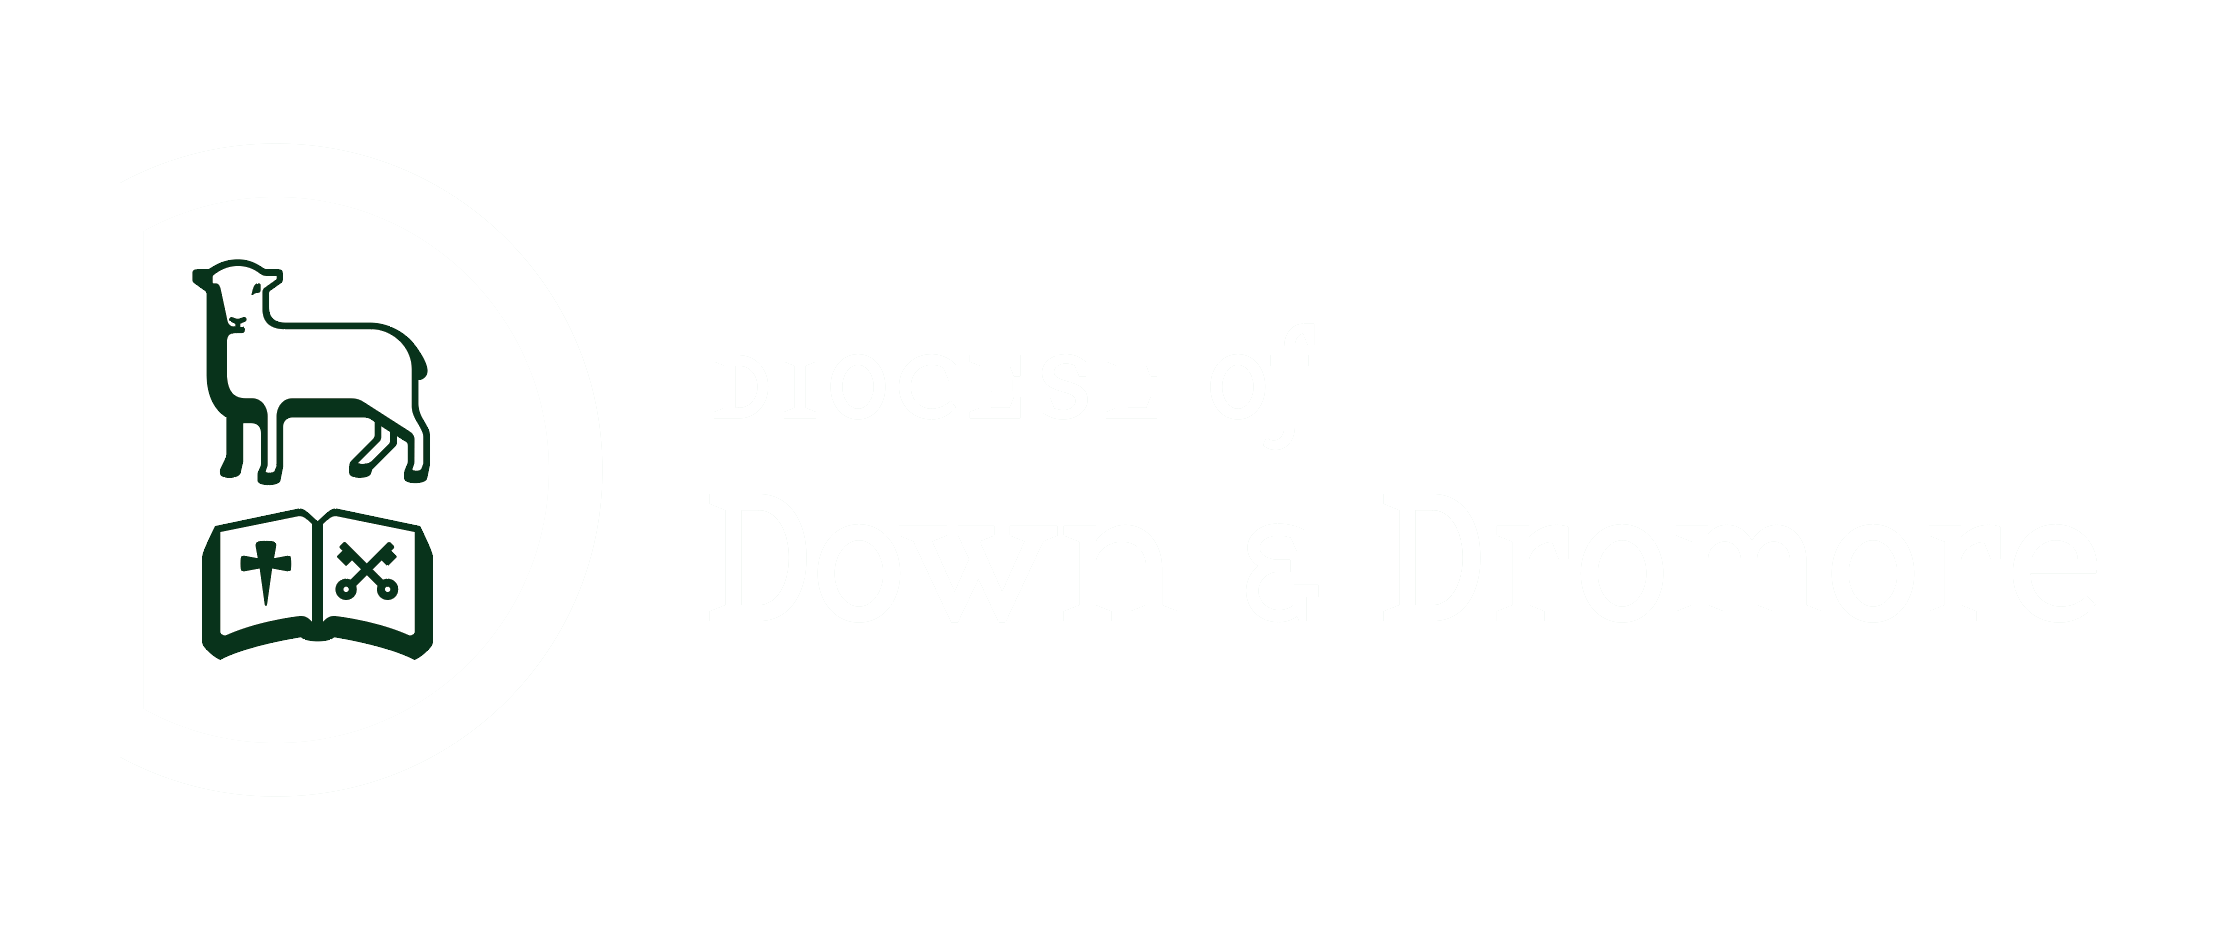 Down and Dromore Logo